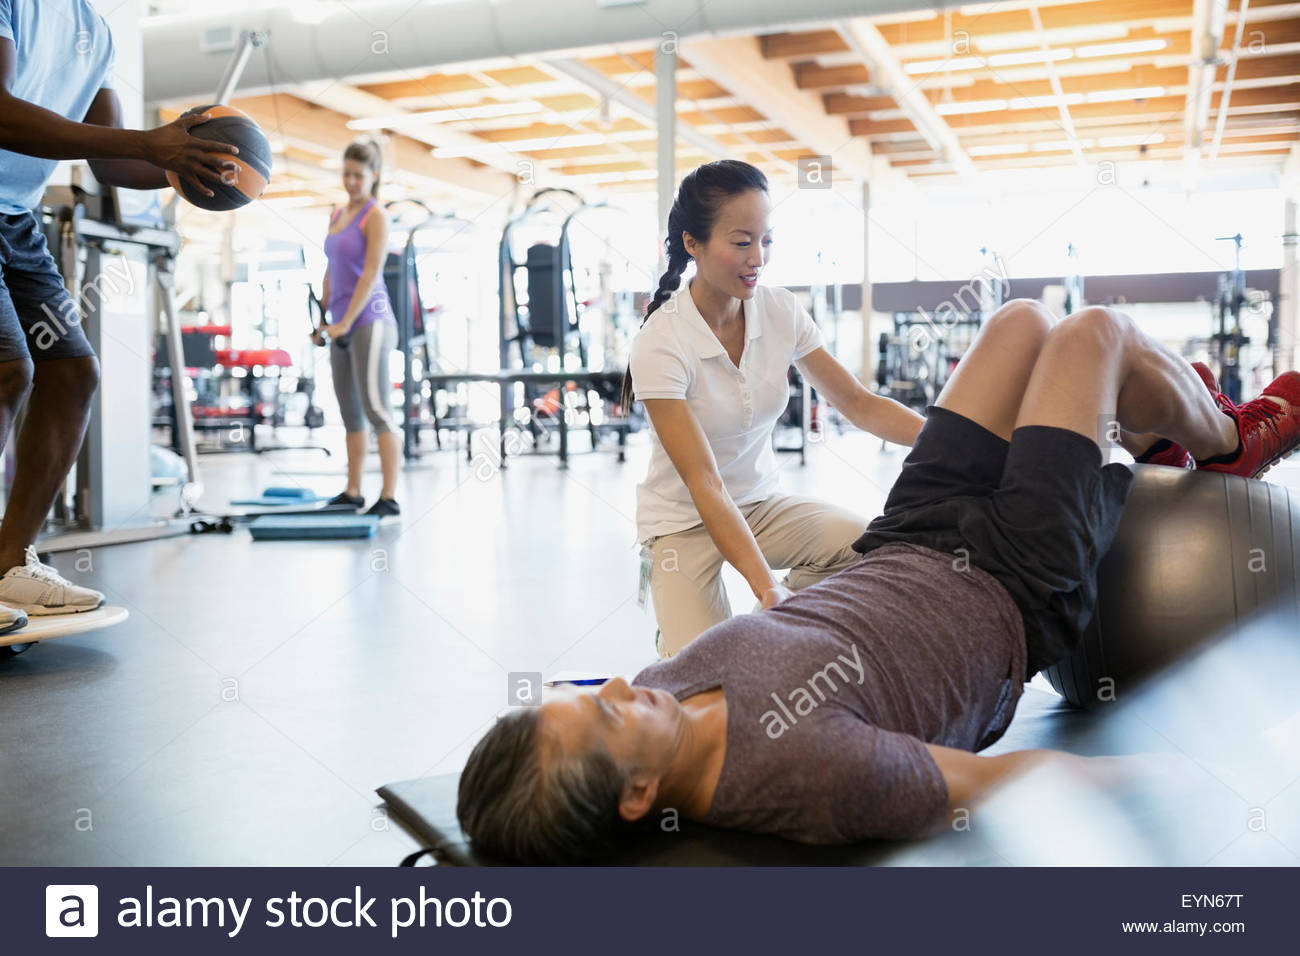 Physical therapist guiding patient fitness ball bridge pose - Stock Image